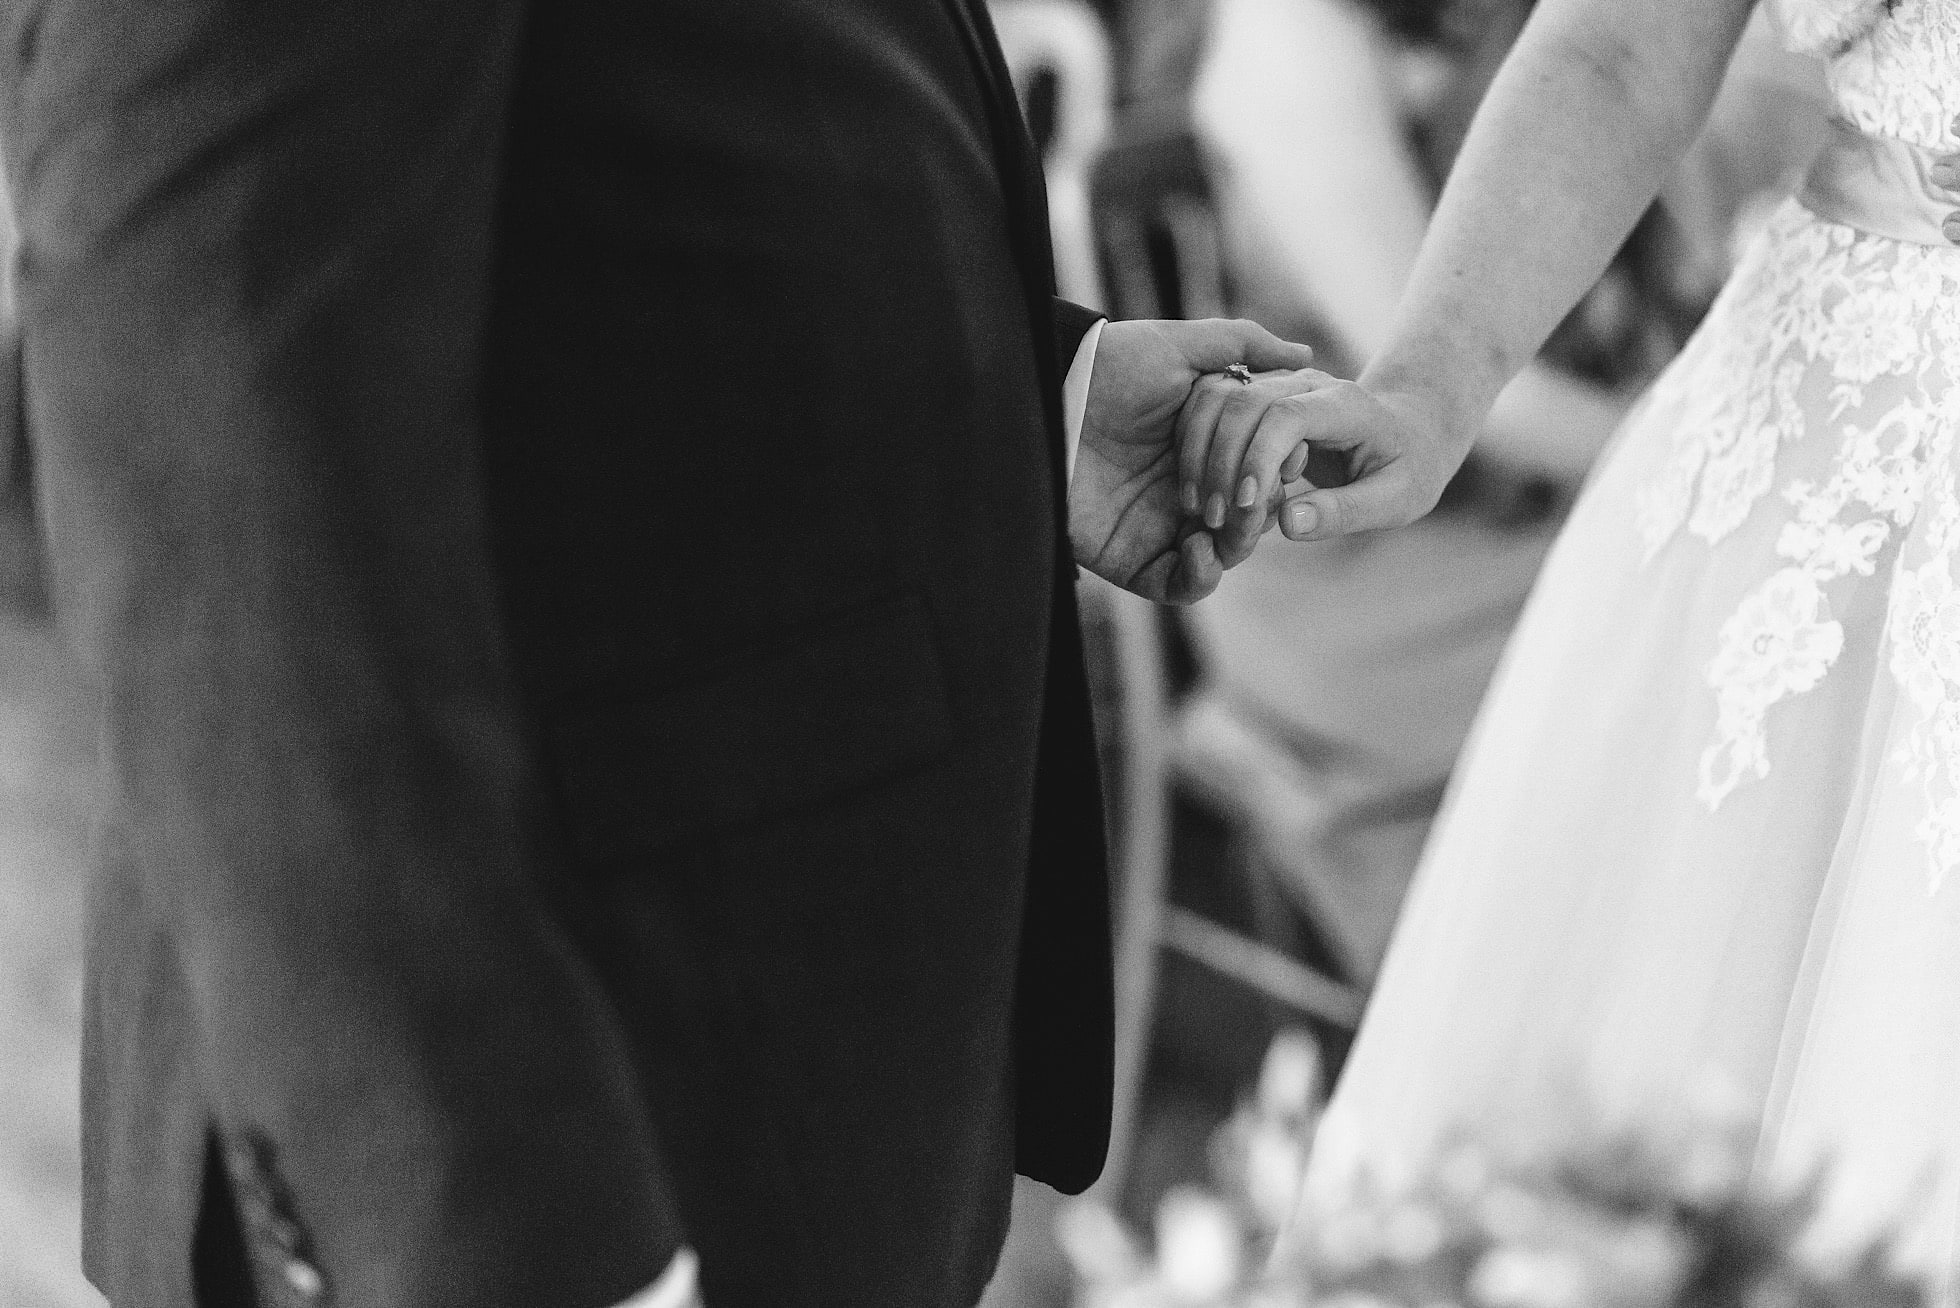 Hand holding during the ceremony